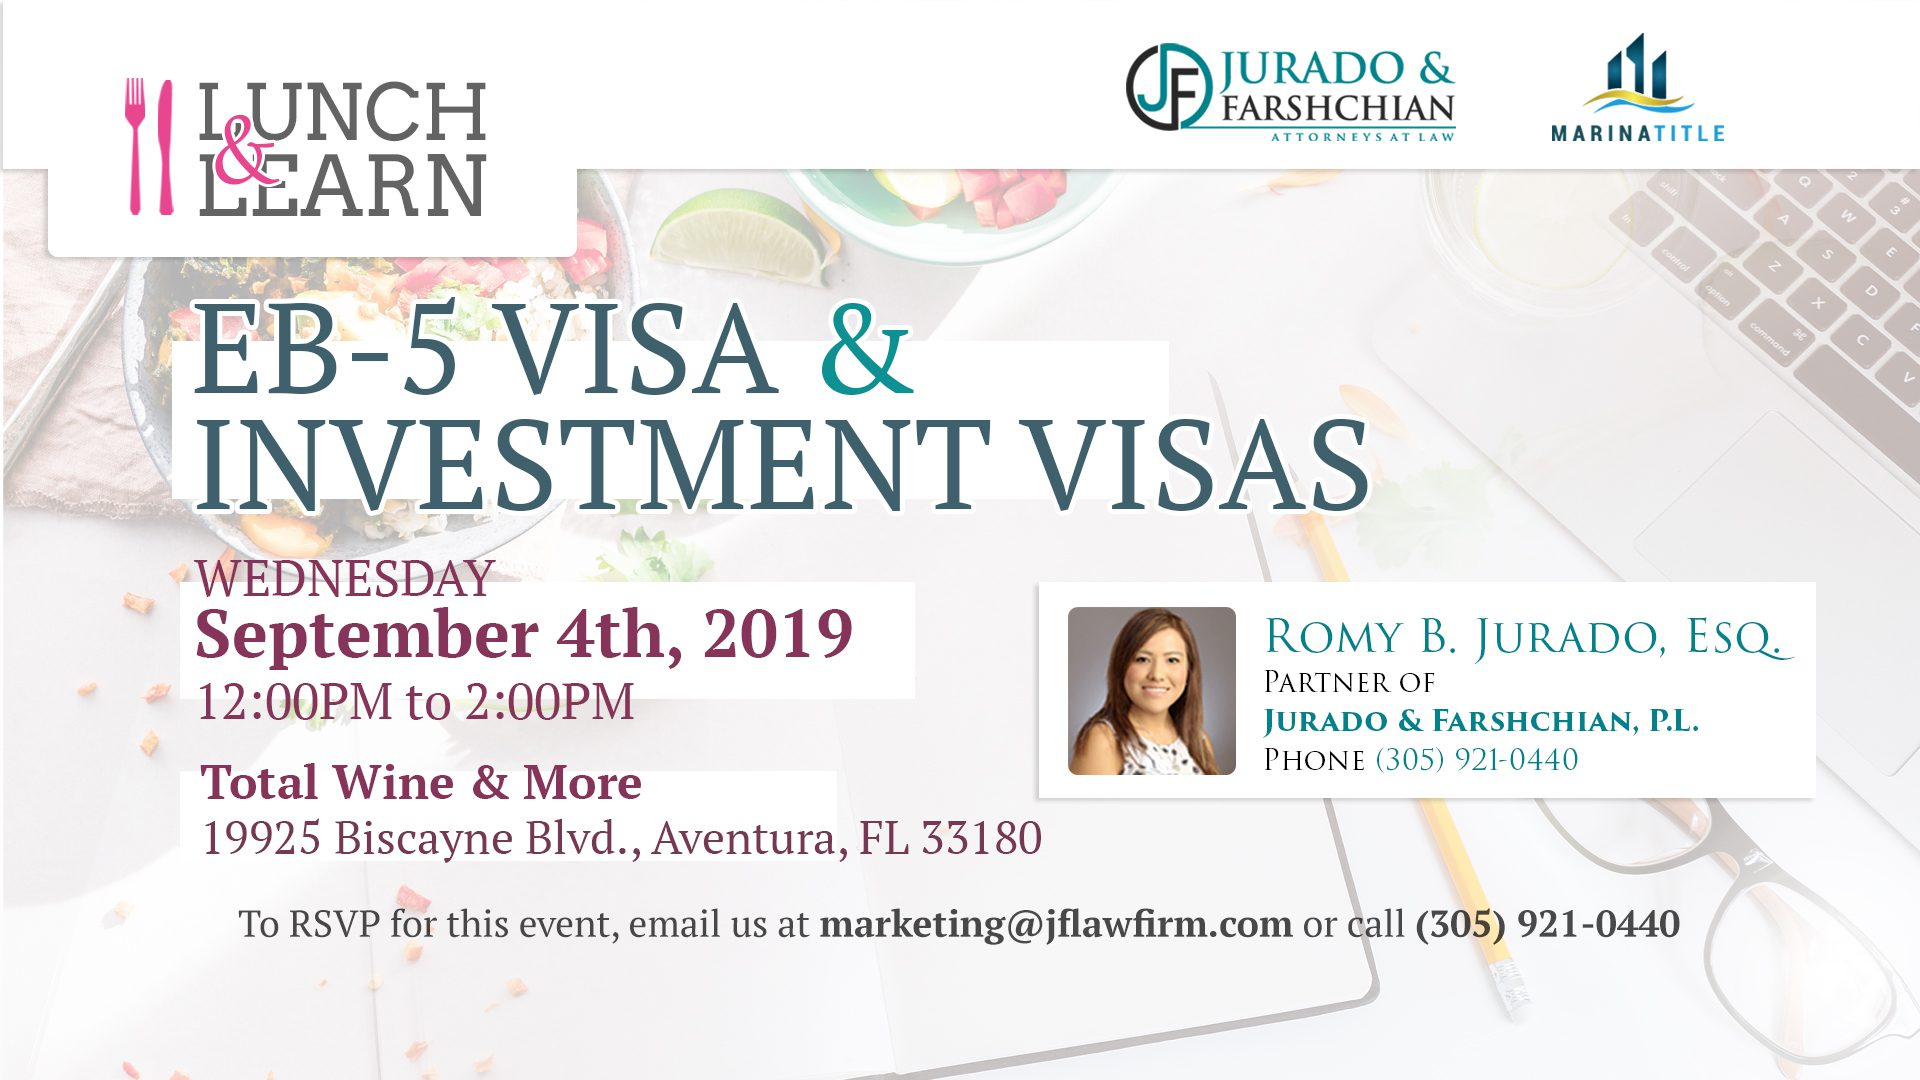 Lunch & Learn - EB-5 Visa and Investment Visas - Refresh